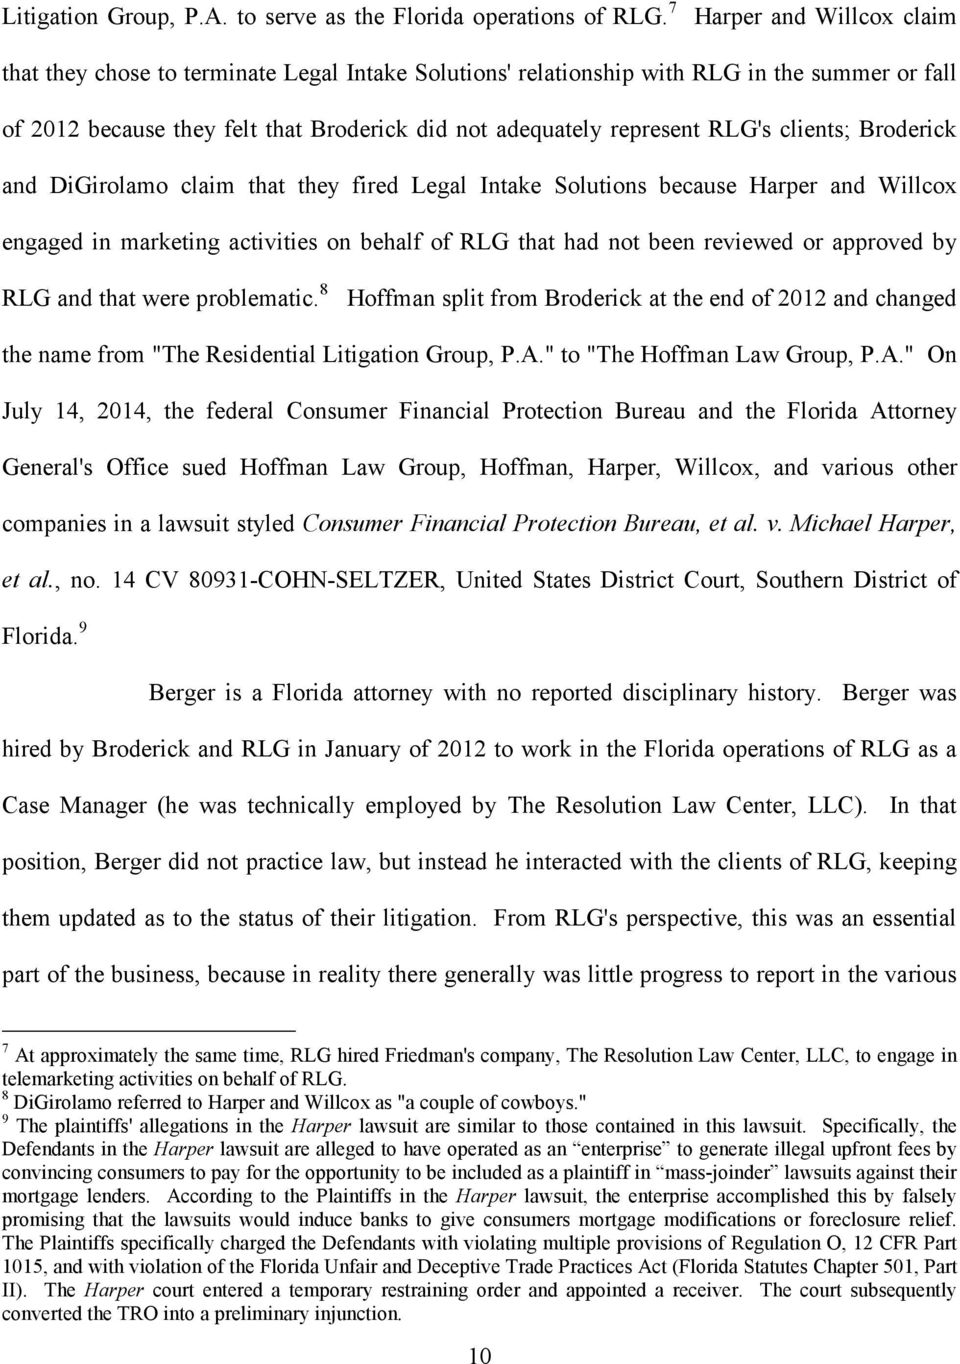 clients; Broderick and DiGirolamo claim that they fired Legal Intake Solutions because Harper and Willcox engaged in marketing activities on behalf of RLG that had not been reviewed or approved by